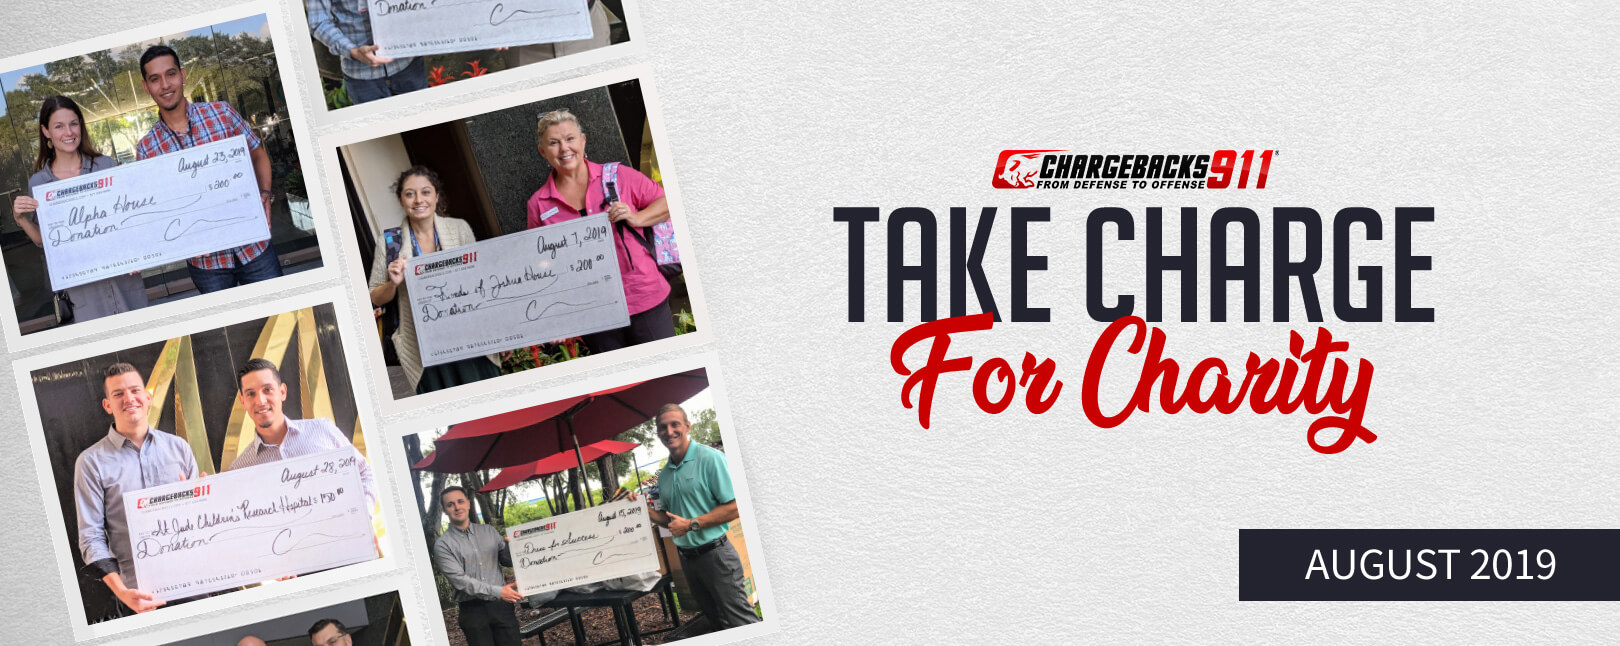 Take Charge for Charity – August 2019